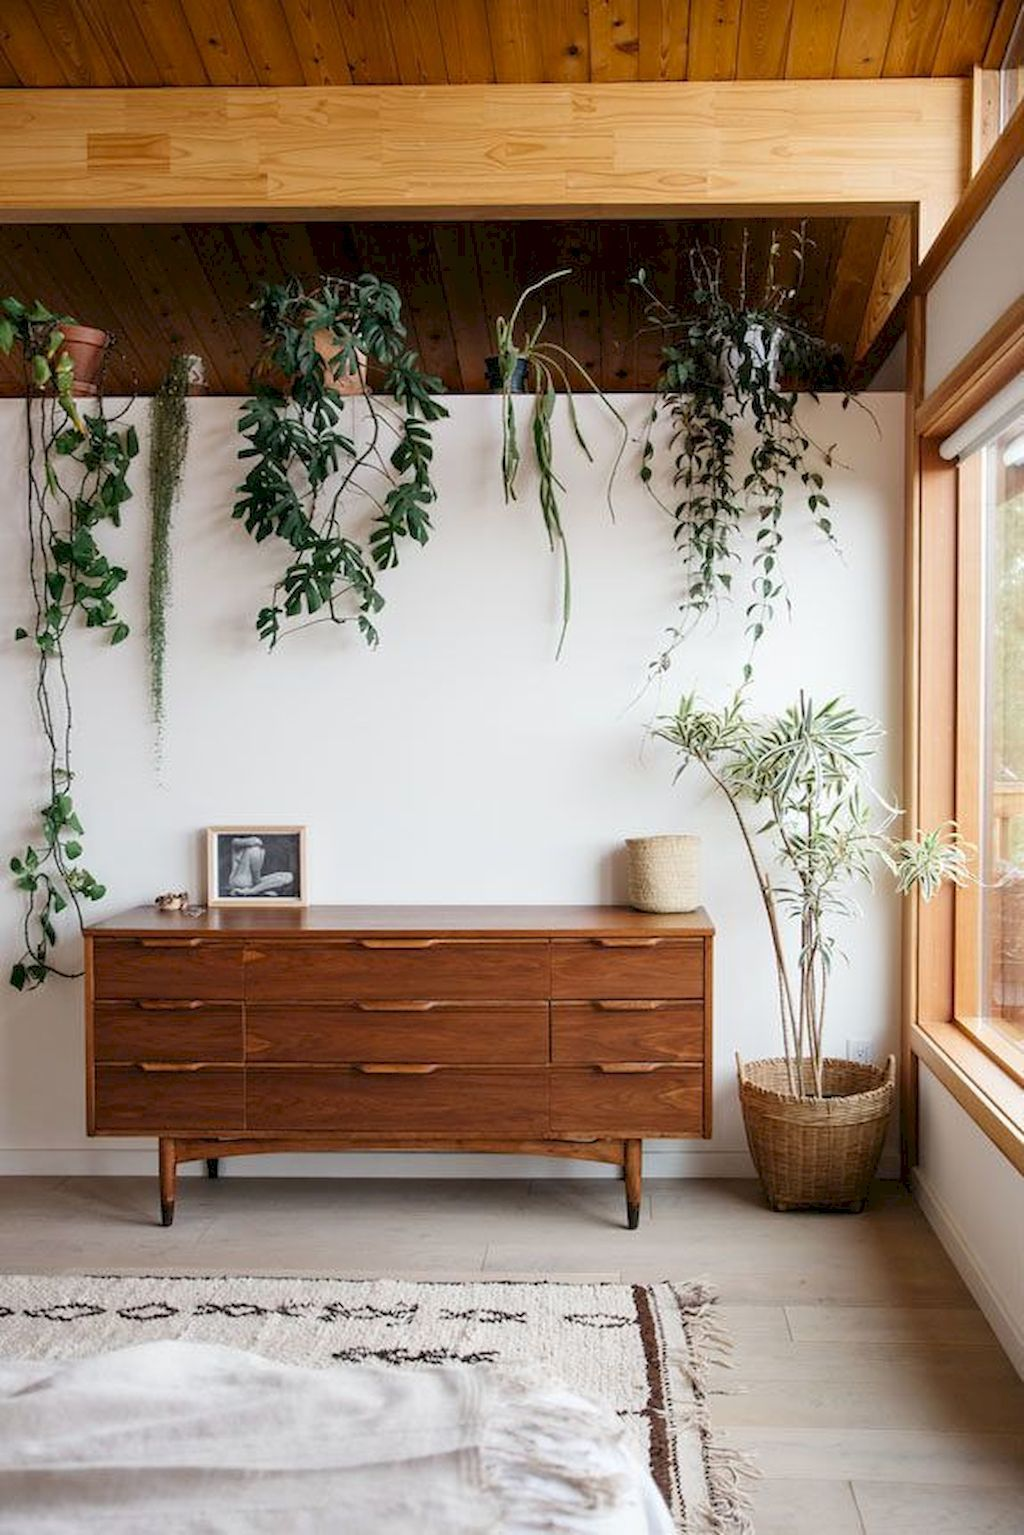 Amazing Life Plant Decorations Indoors Home Decor And